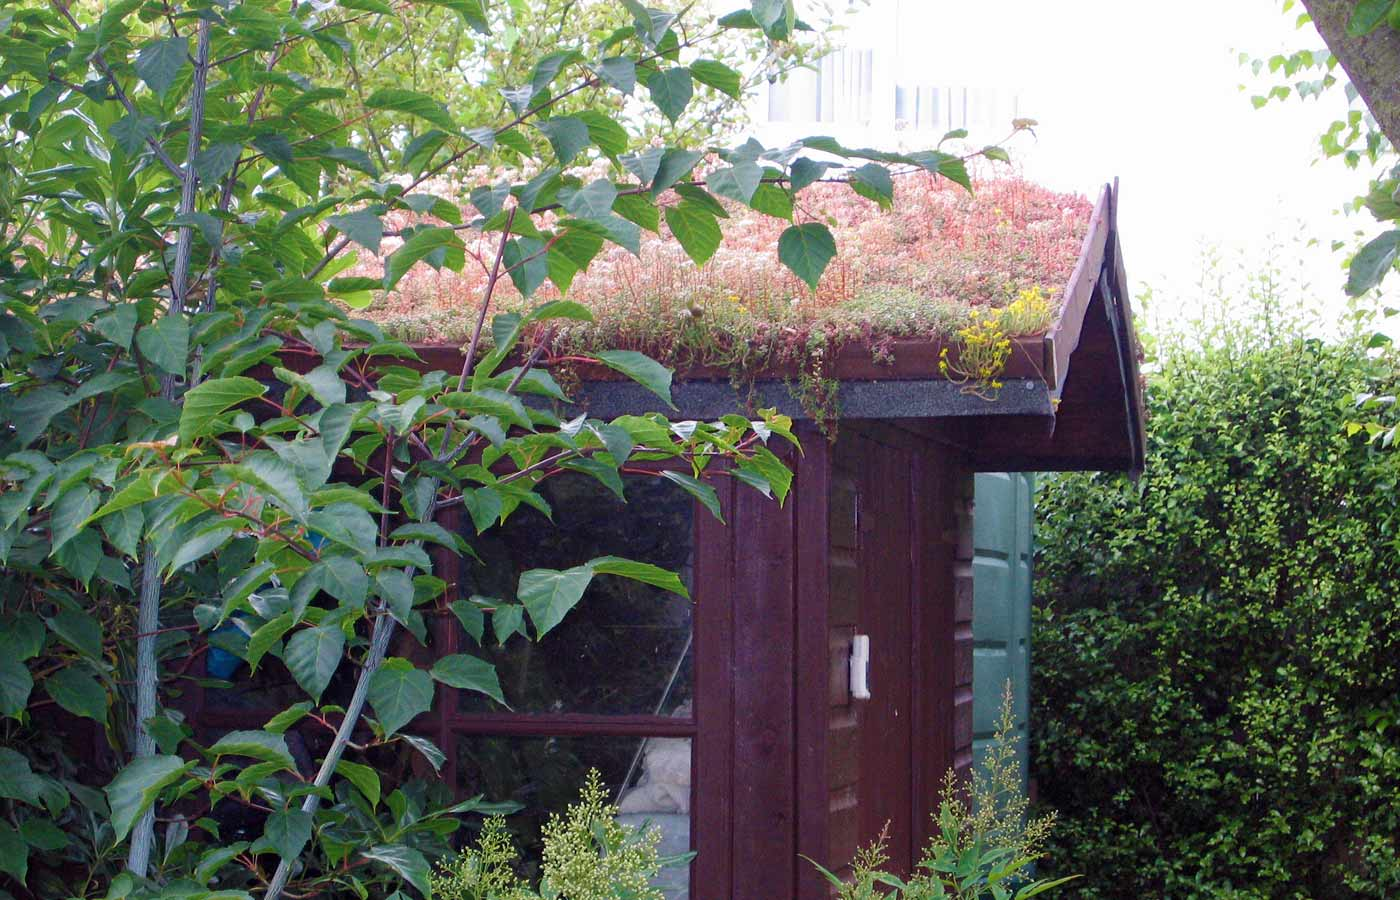 Shed with planted roof